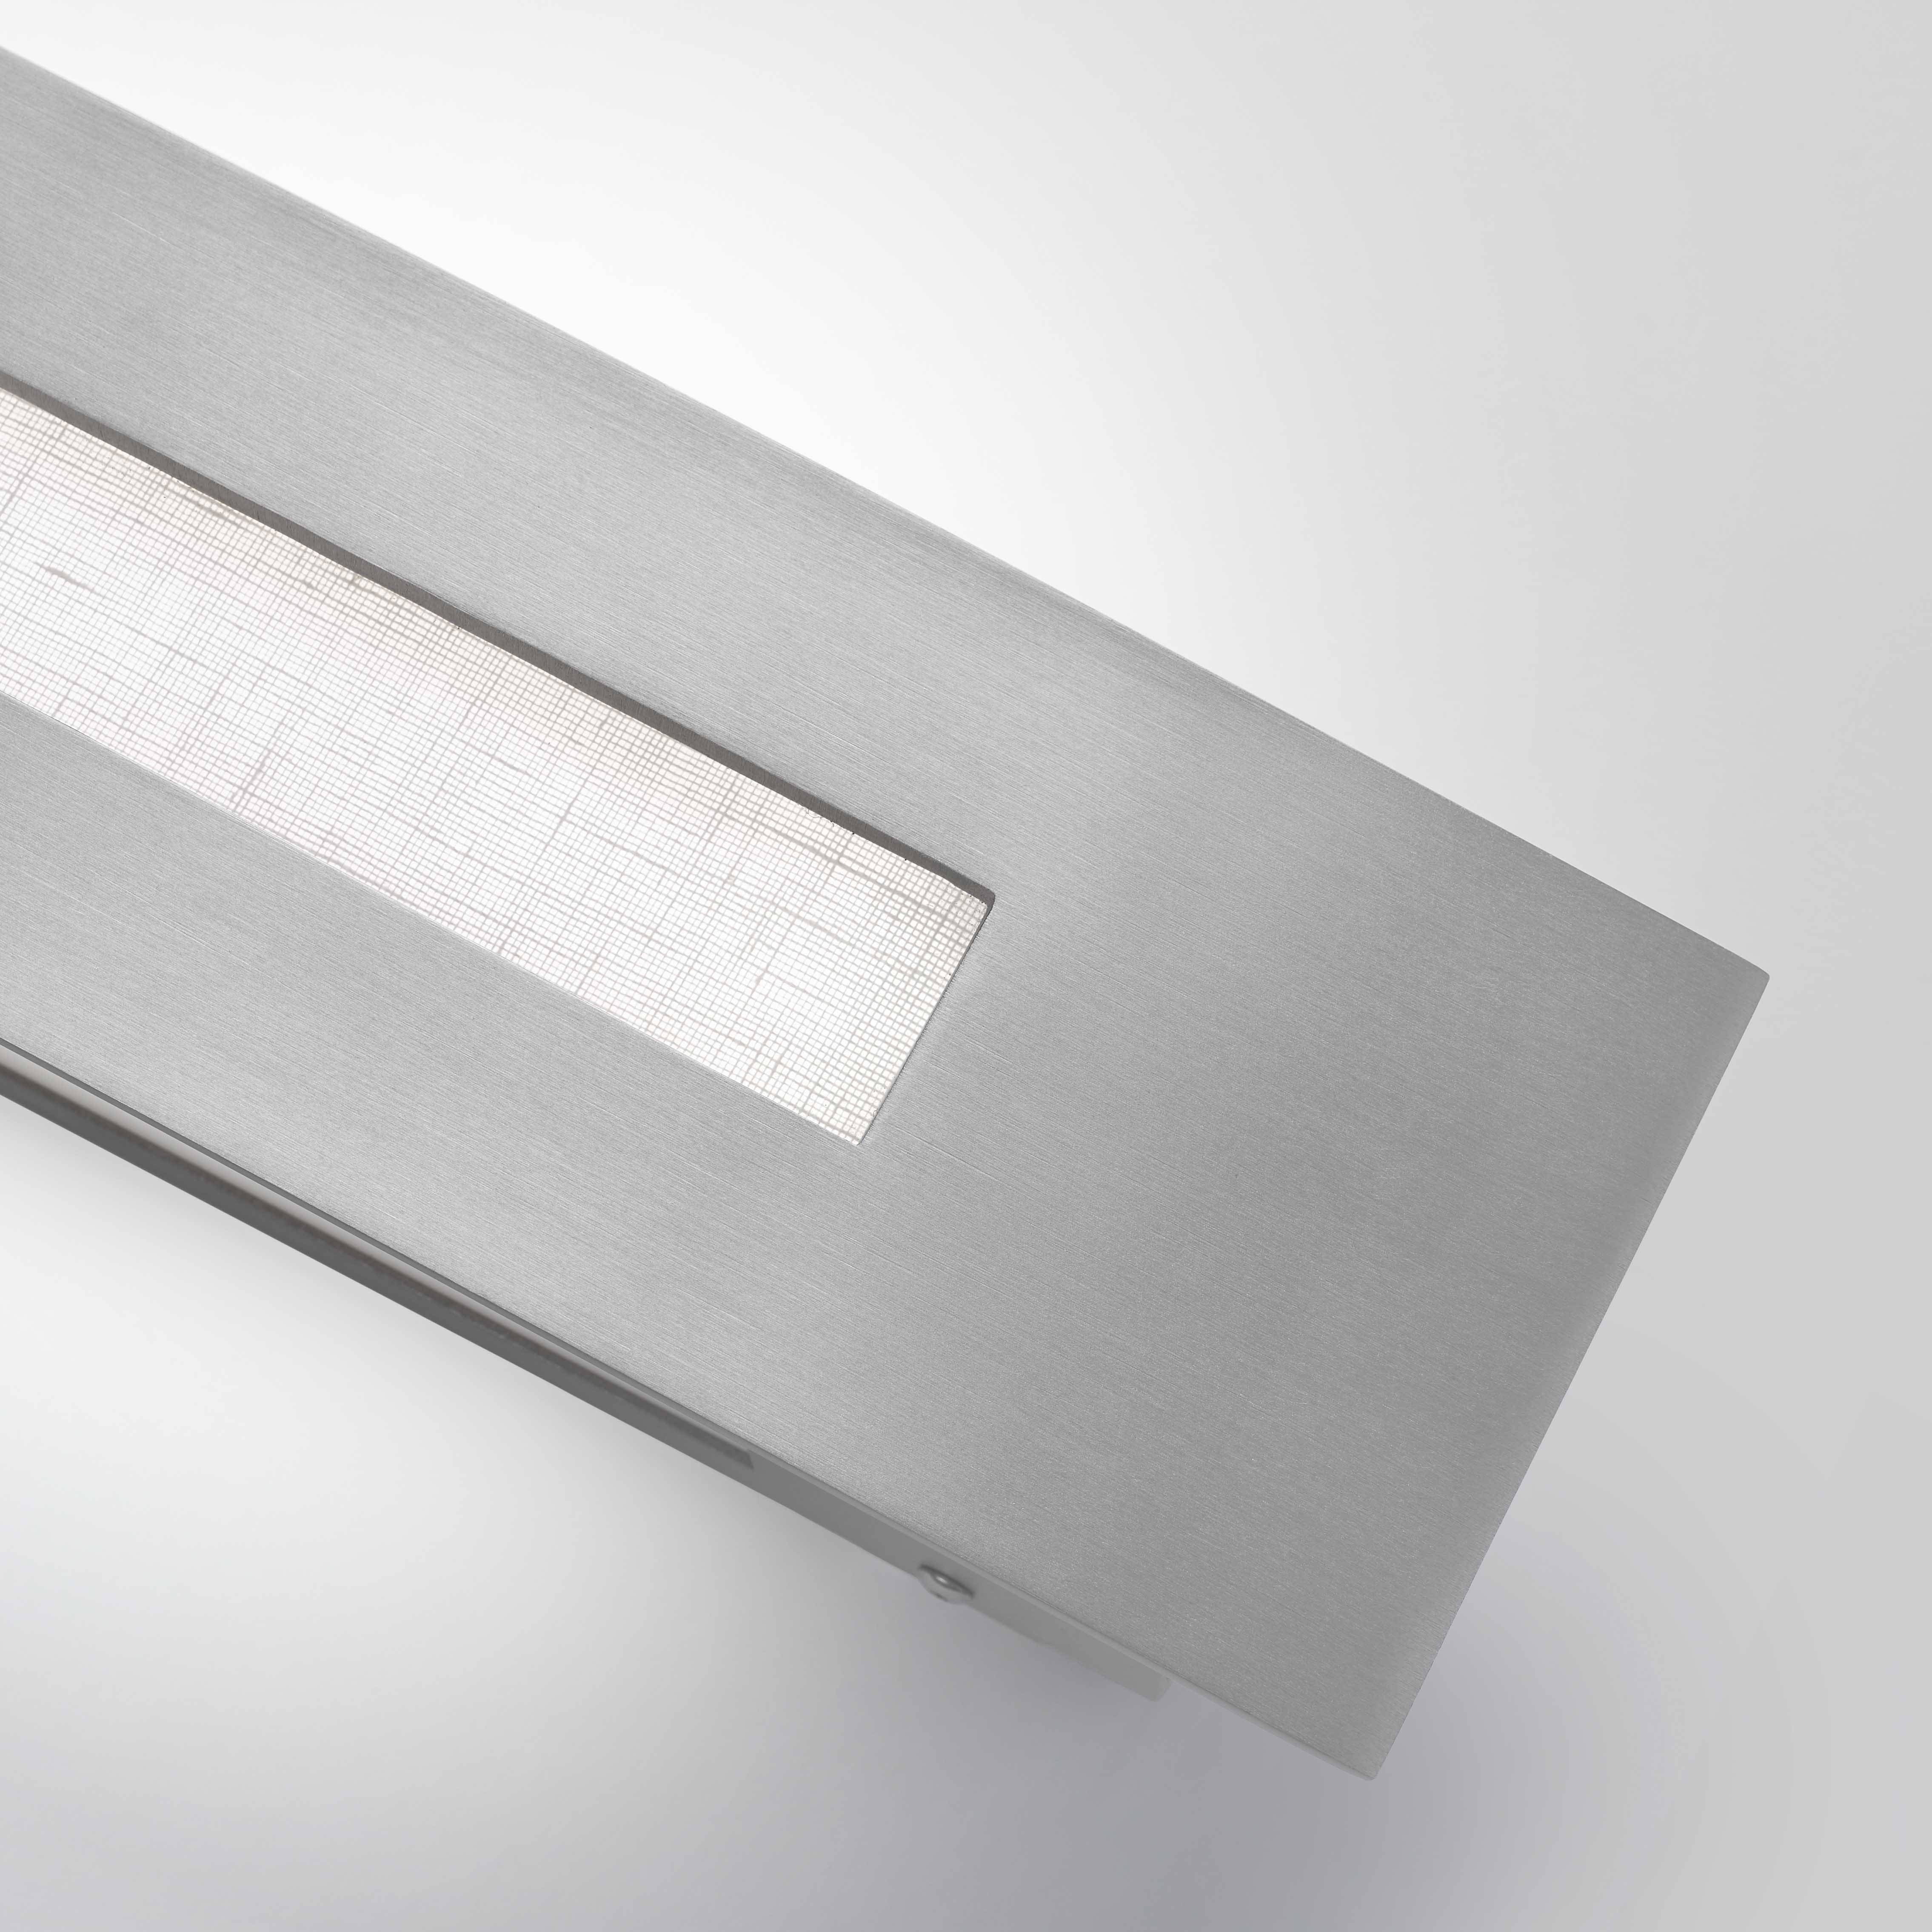 Premium metal and lumicor acrylic light fixture finishes.